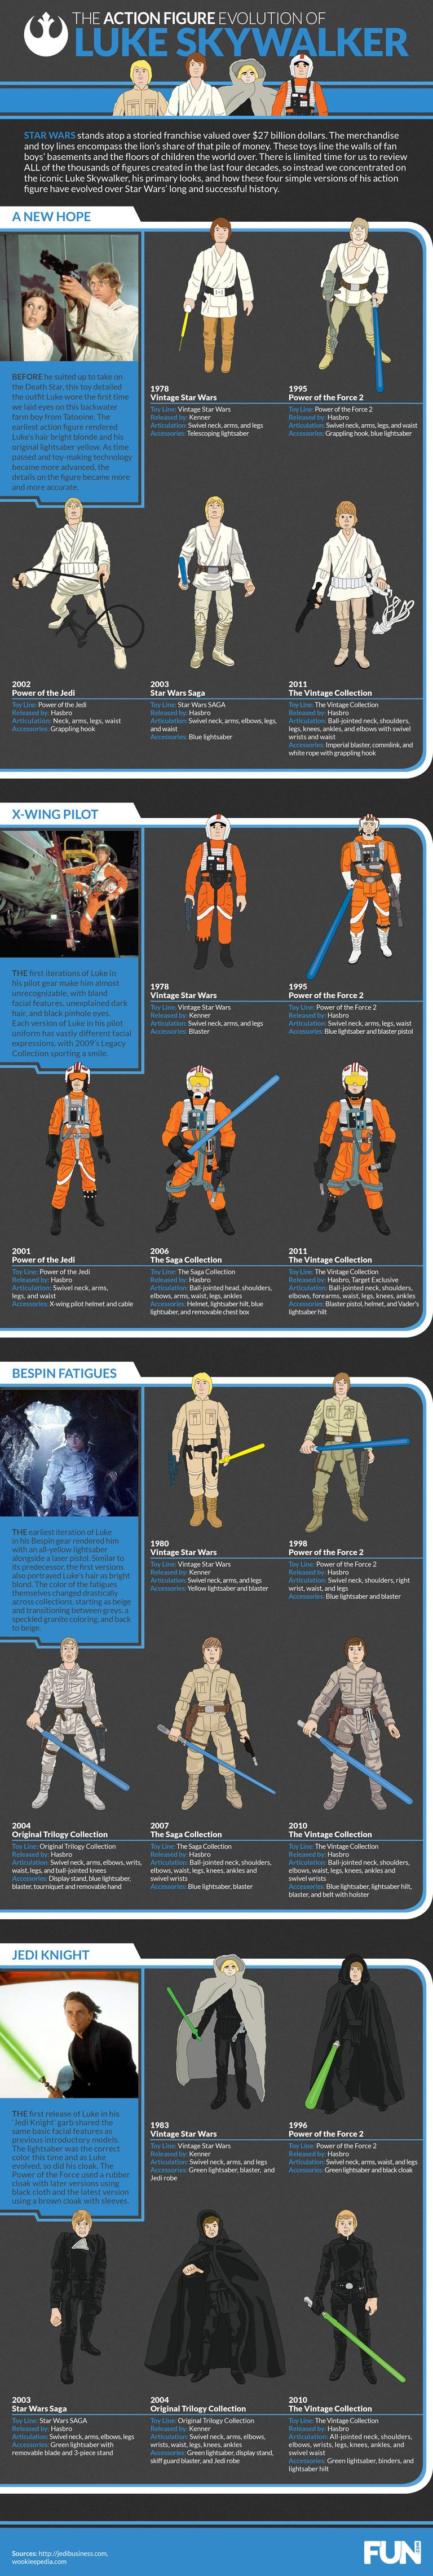 Luke Skywalker Action Figures Infographic